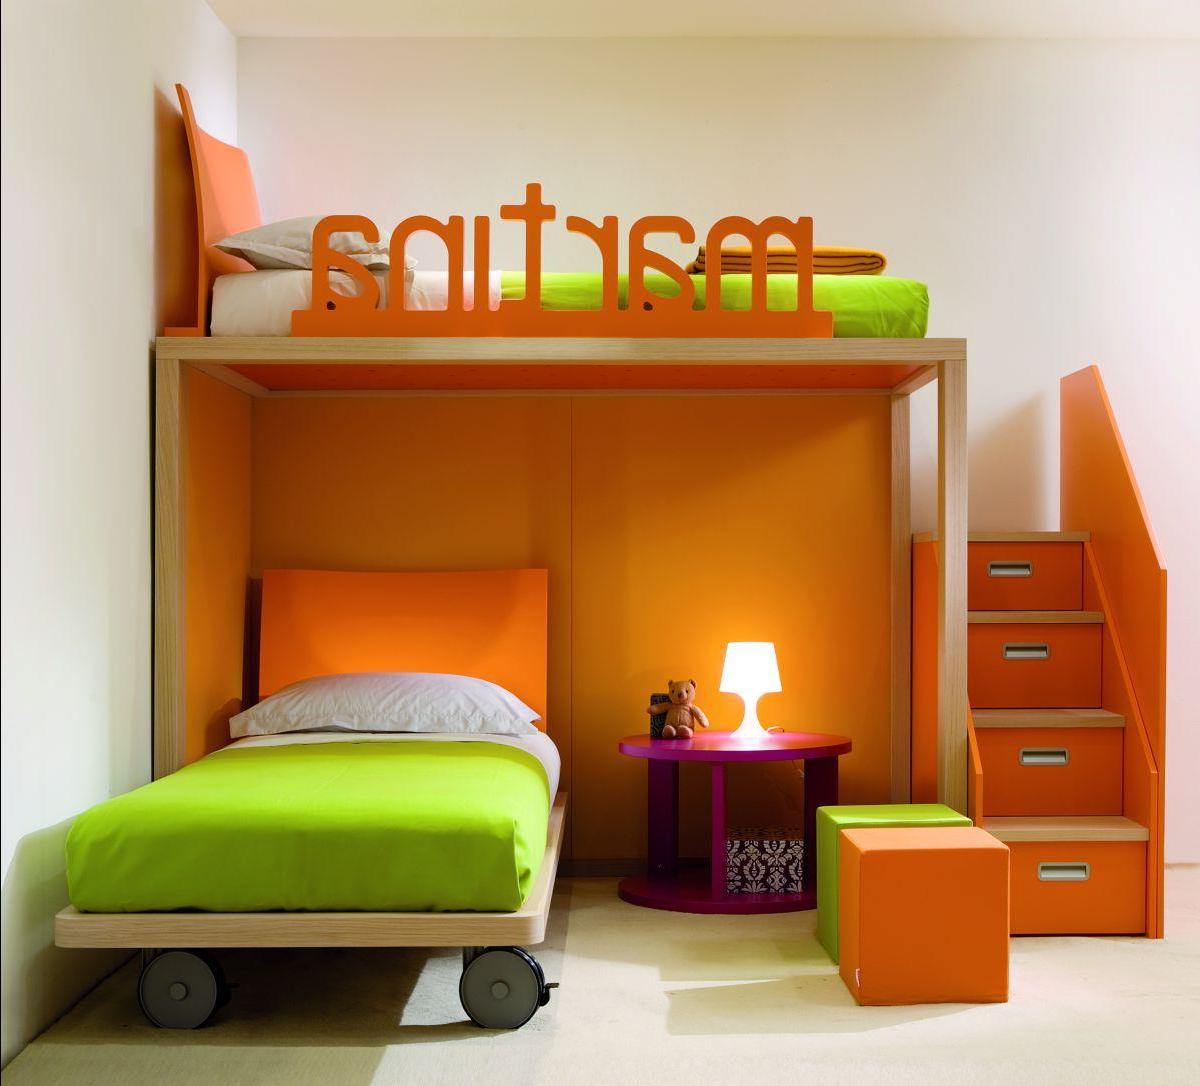 2016 2017 for Double bed designs for small spaces